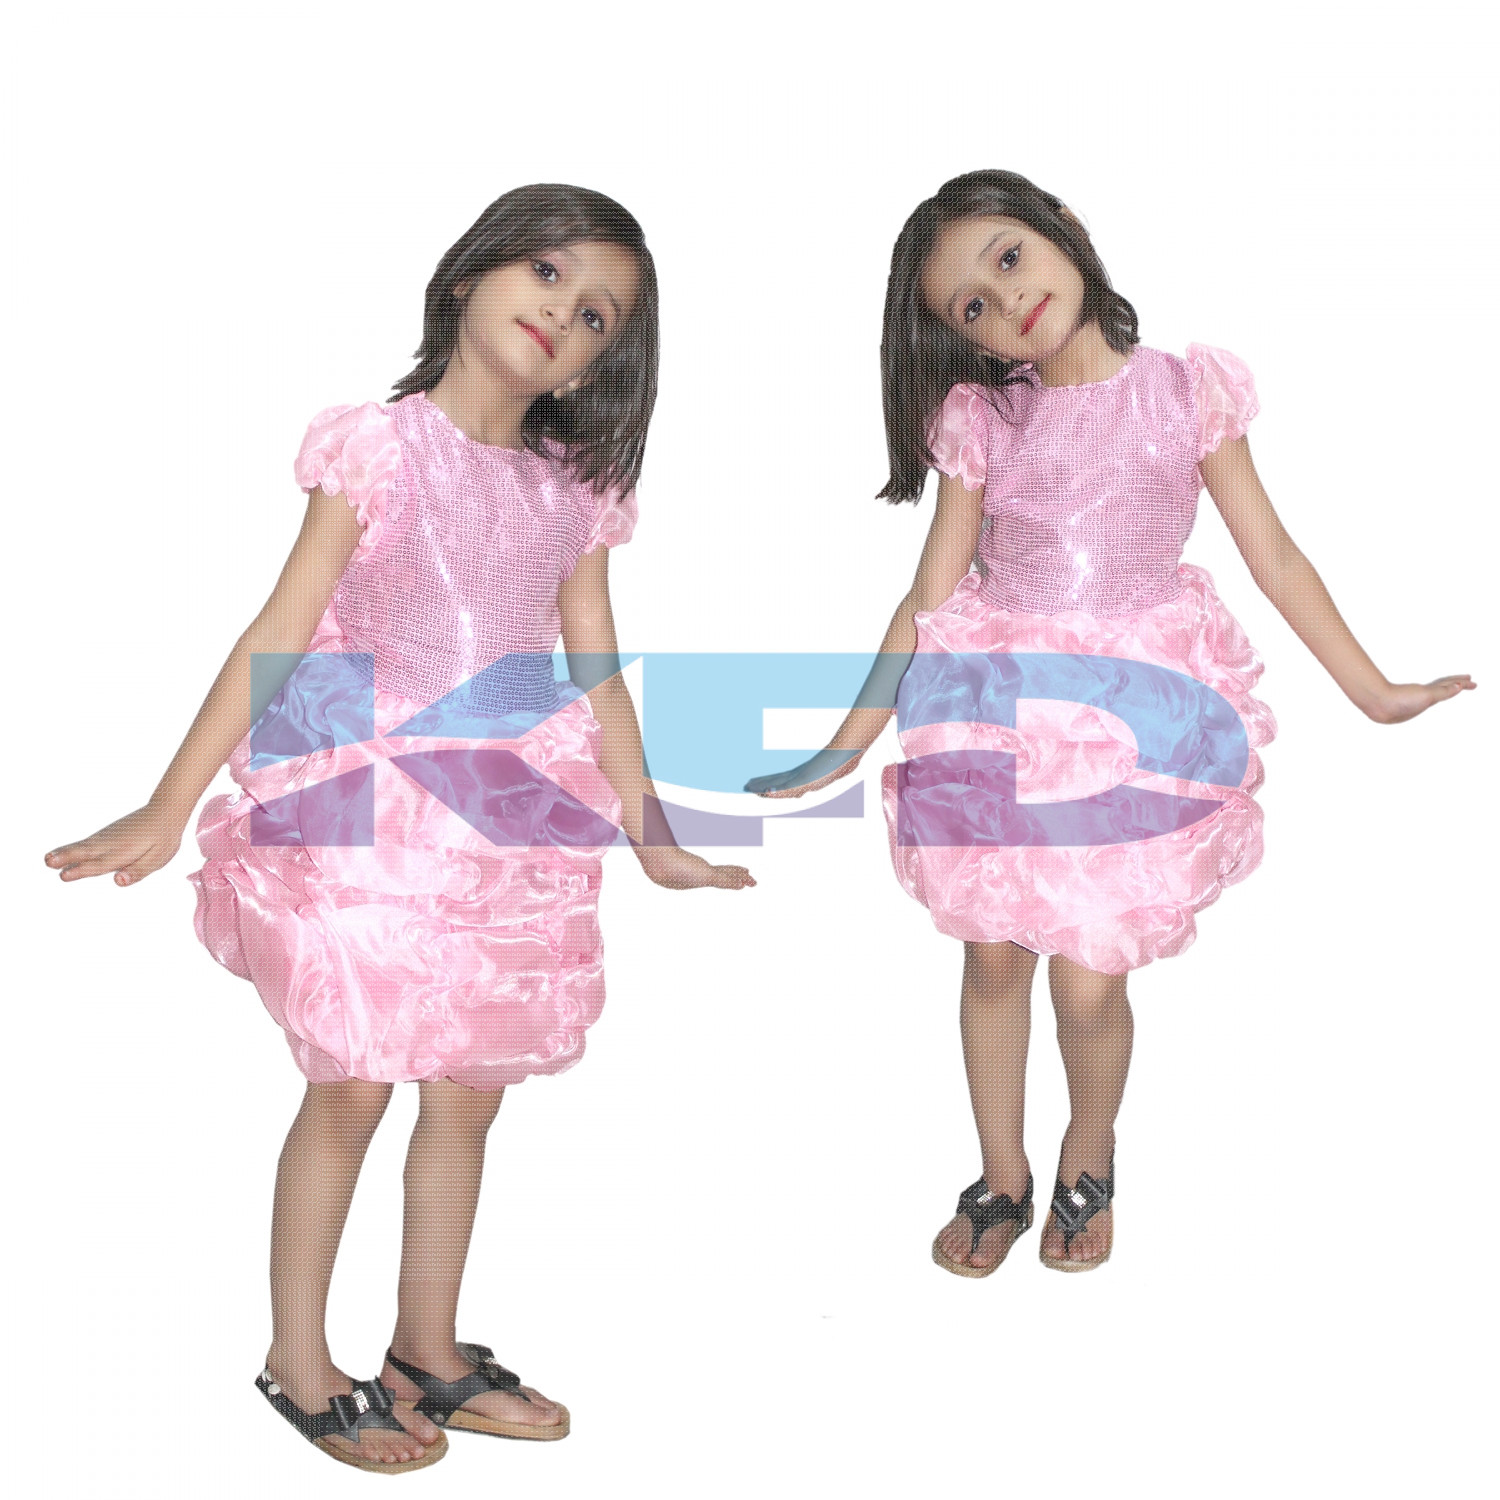 Barbie Girl fancy dress for kids,Fairy Tales Costume for Annual function/Theme Party/Competition/Stage Shows/Birthday Party Dress